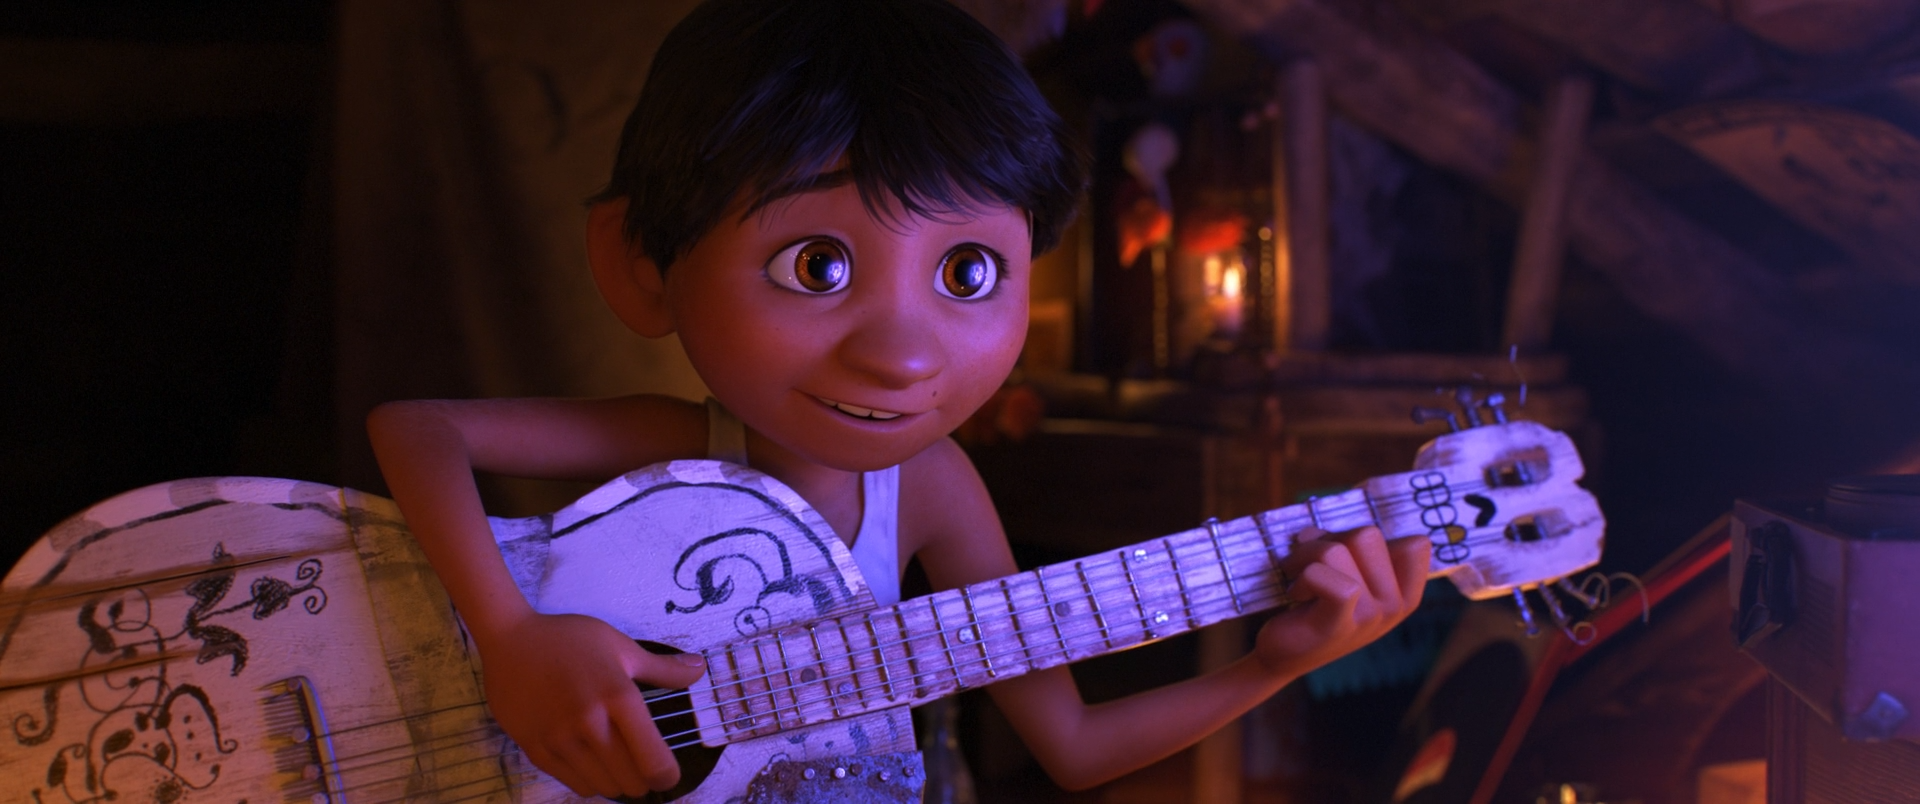 Тайна Коко / Coco (2017) BDRip 1080p | iTunes